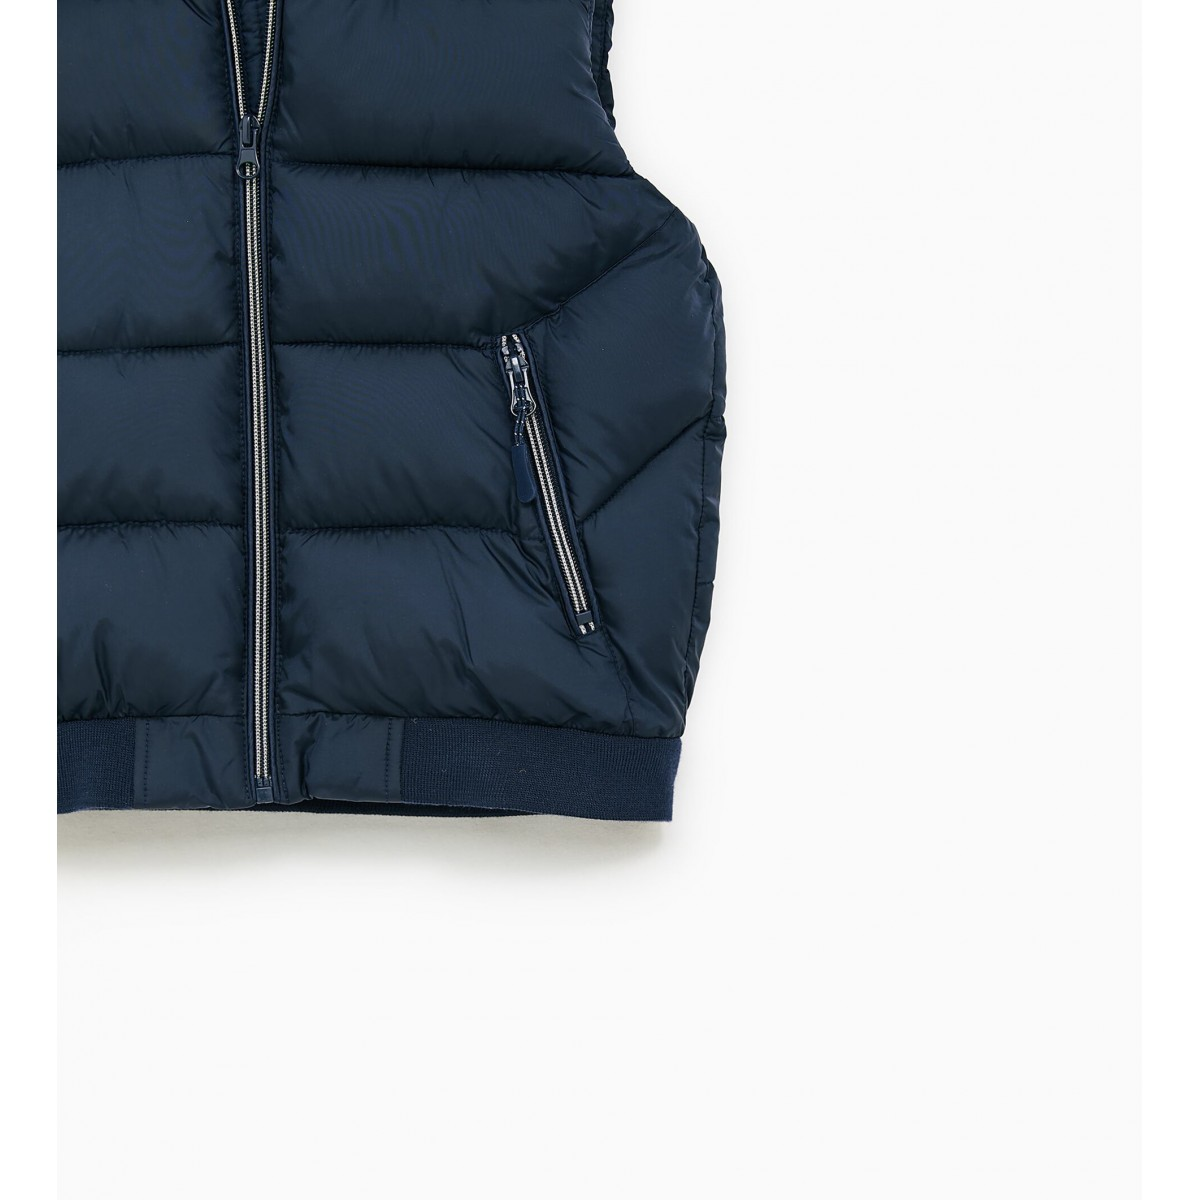 Zara Basic Vest (Dark Blue)